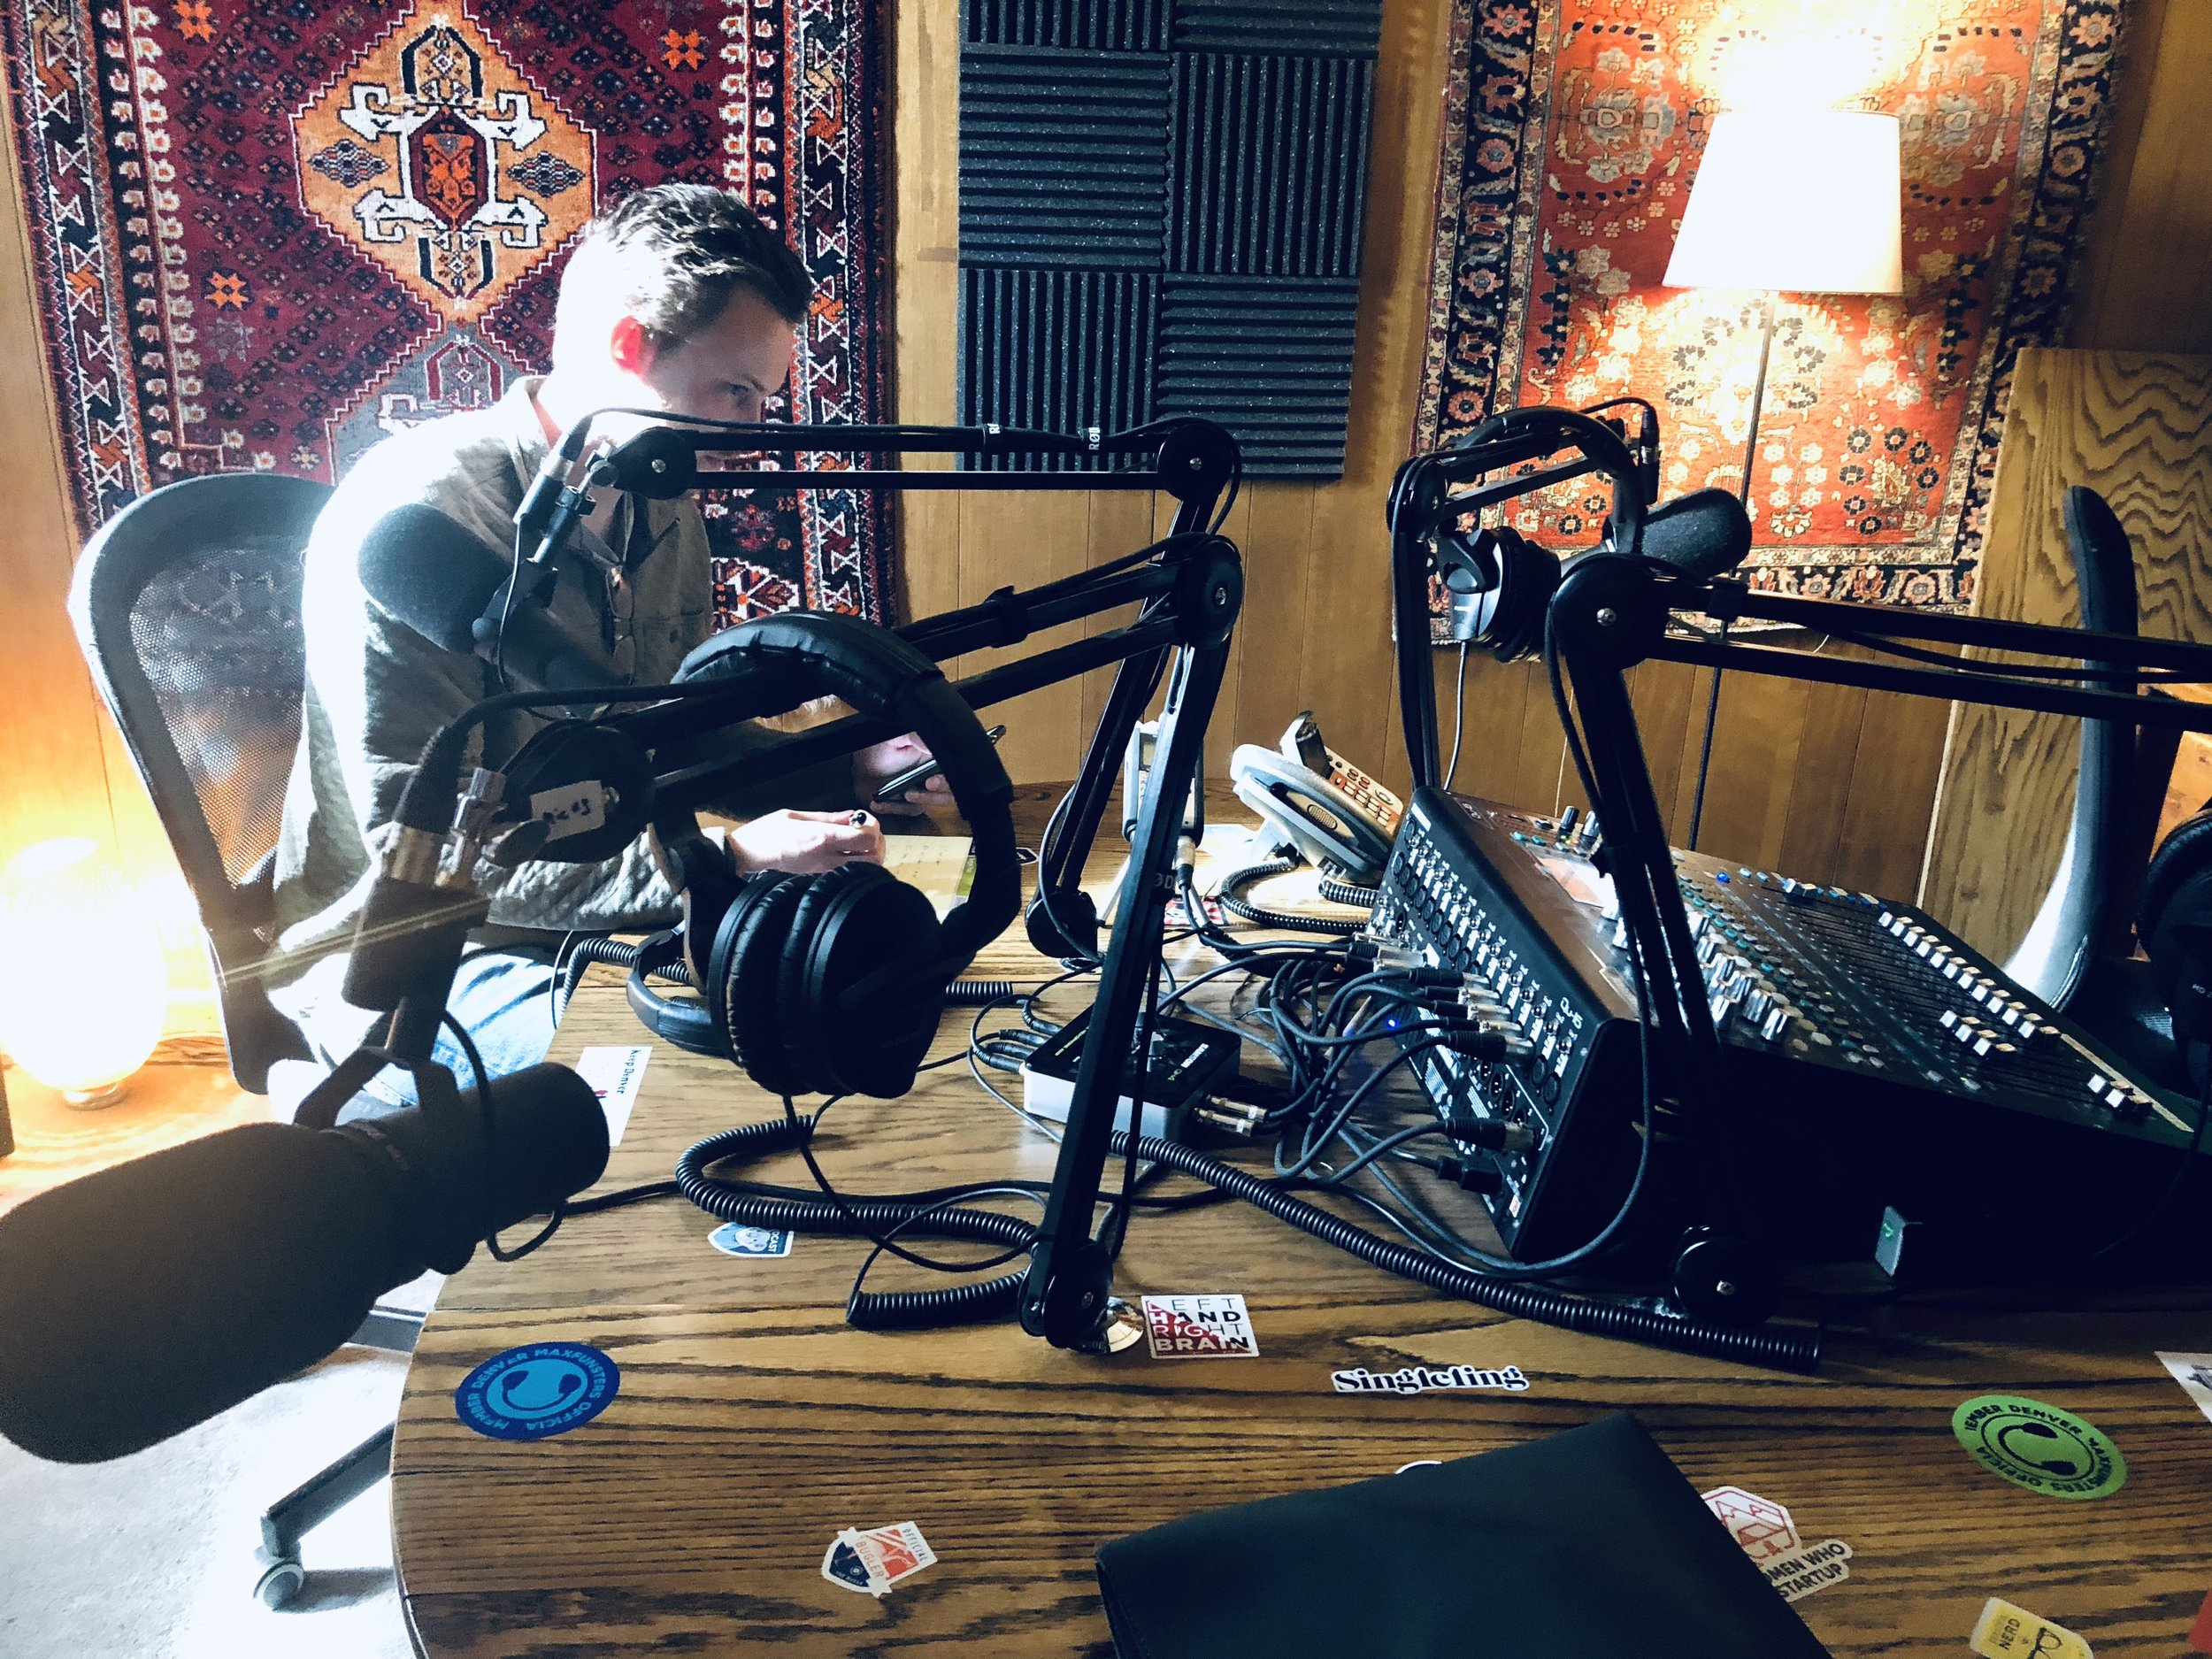 House of Pod, Podcasting Studio in Denver Co.